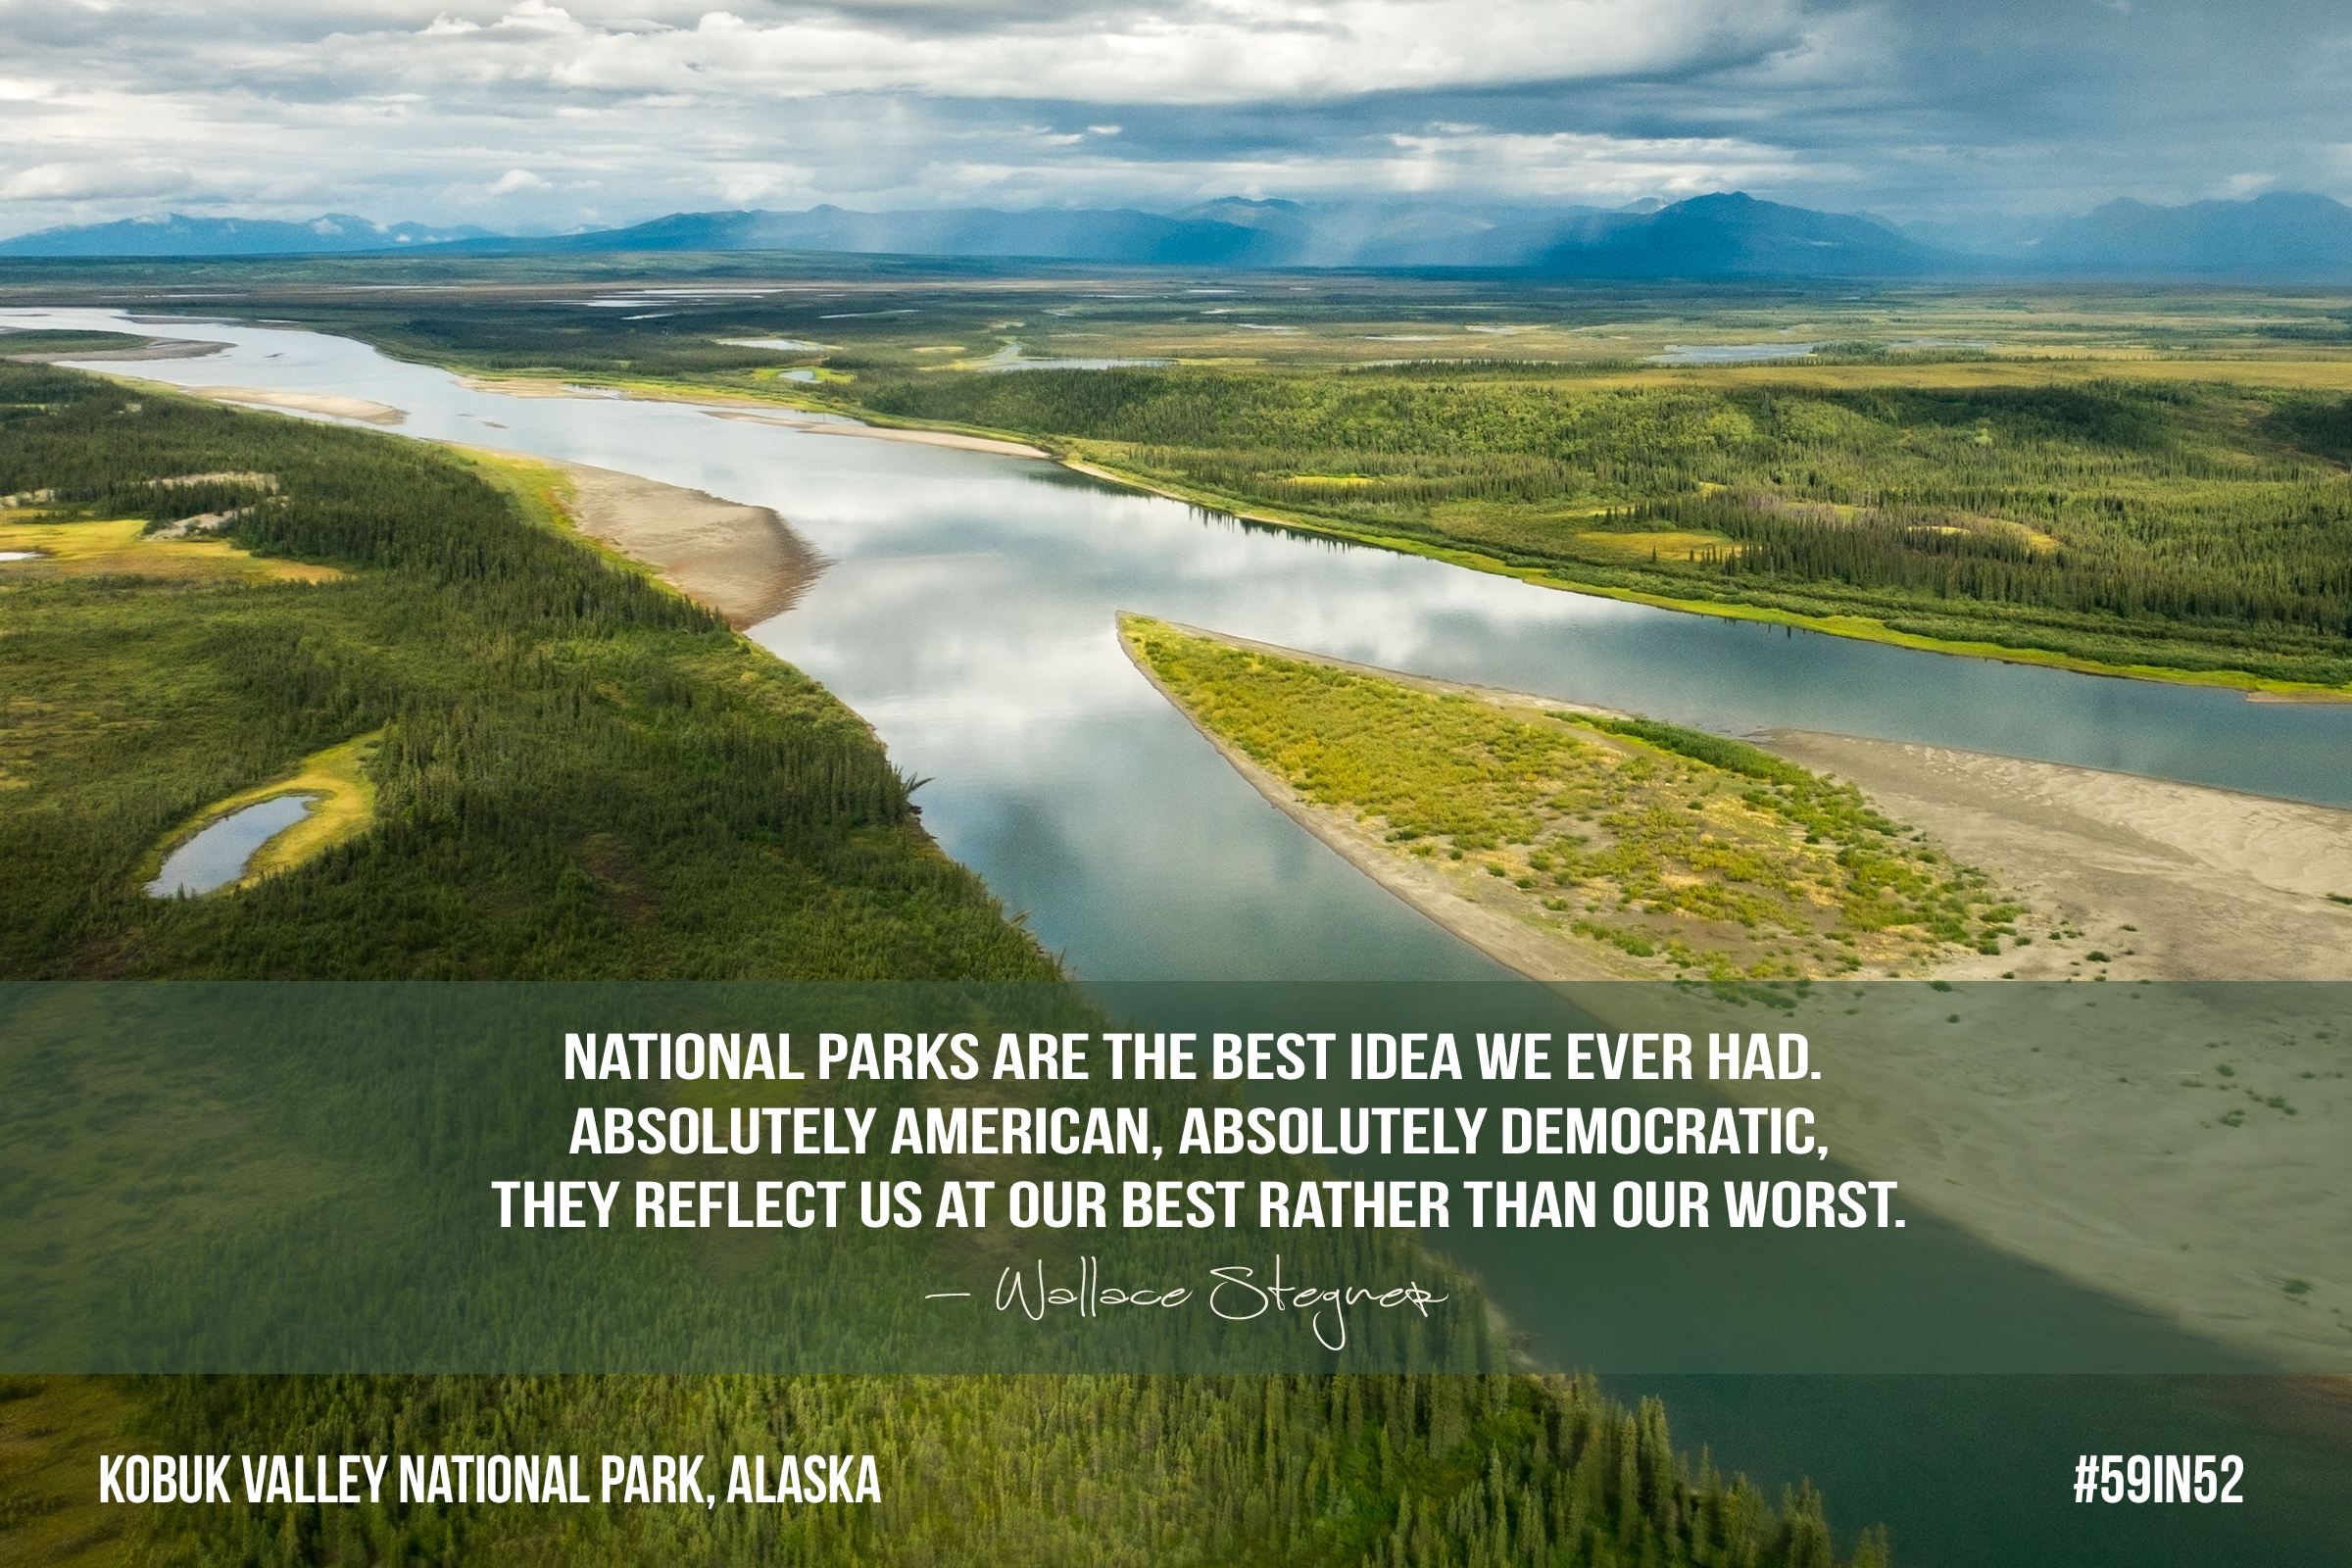 """""""National parks are the best idea we ever had. Absolutely American, absolutely democratic, they reflect us at our best rather than our worst."""" - Wallace Stegner"""